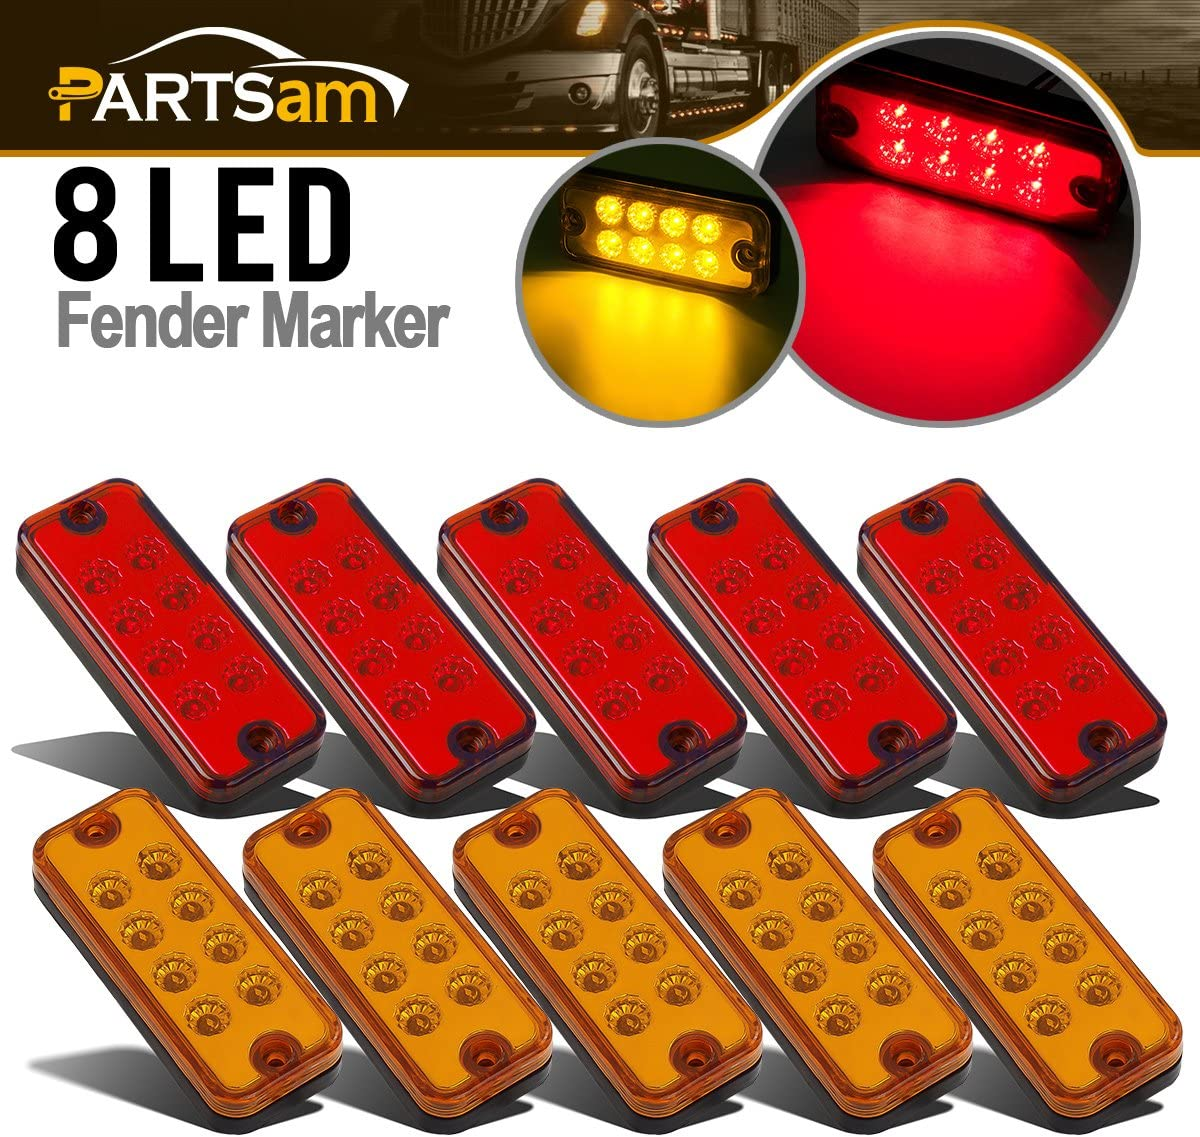 Partsam 4x2 Led Side Marker Lamps Truck Year-end gift Trailer Genuine Lights Clearance